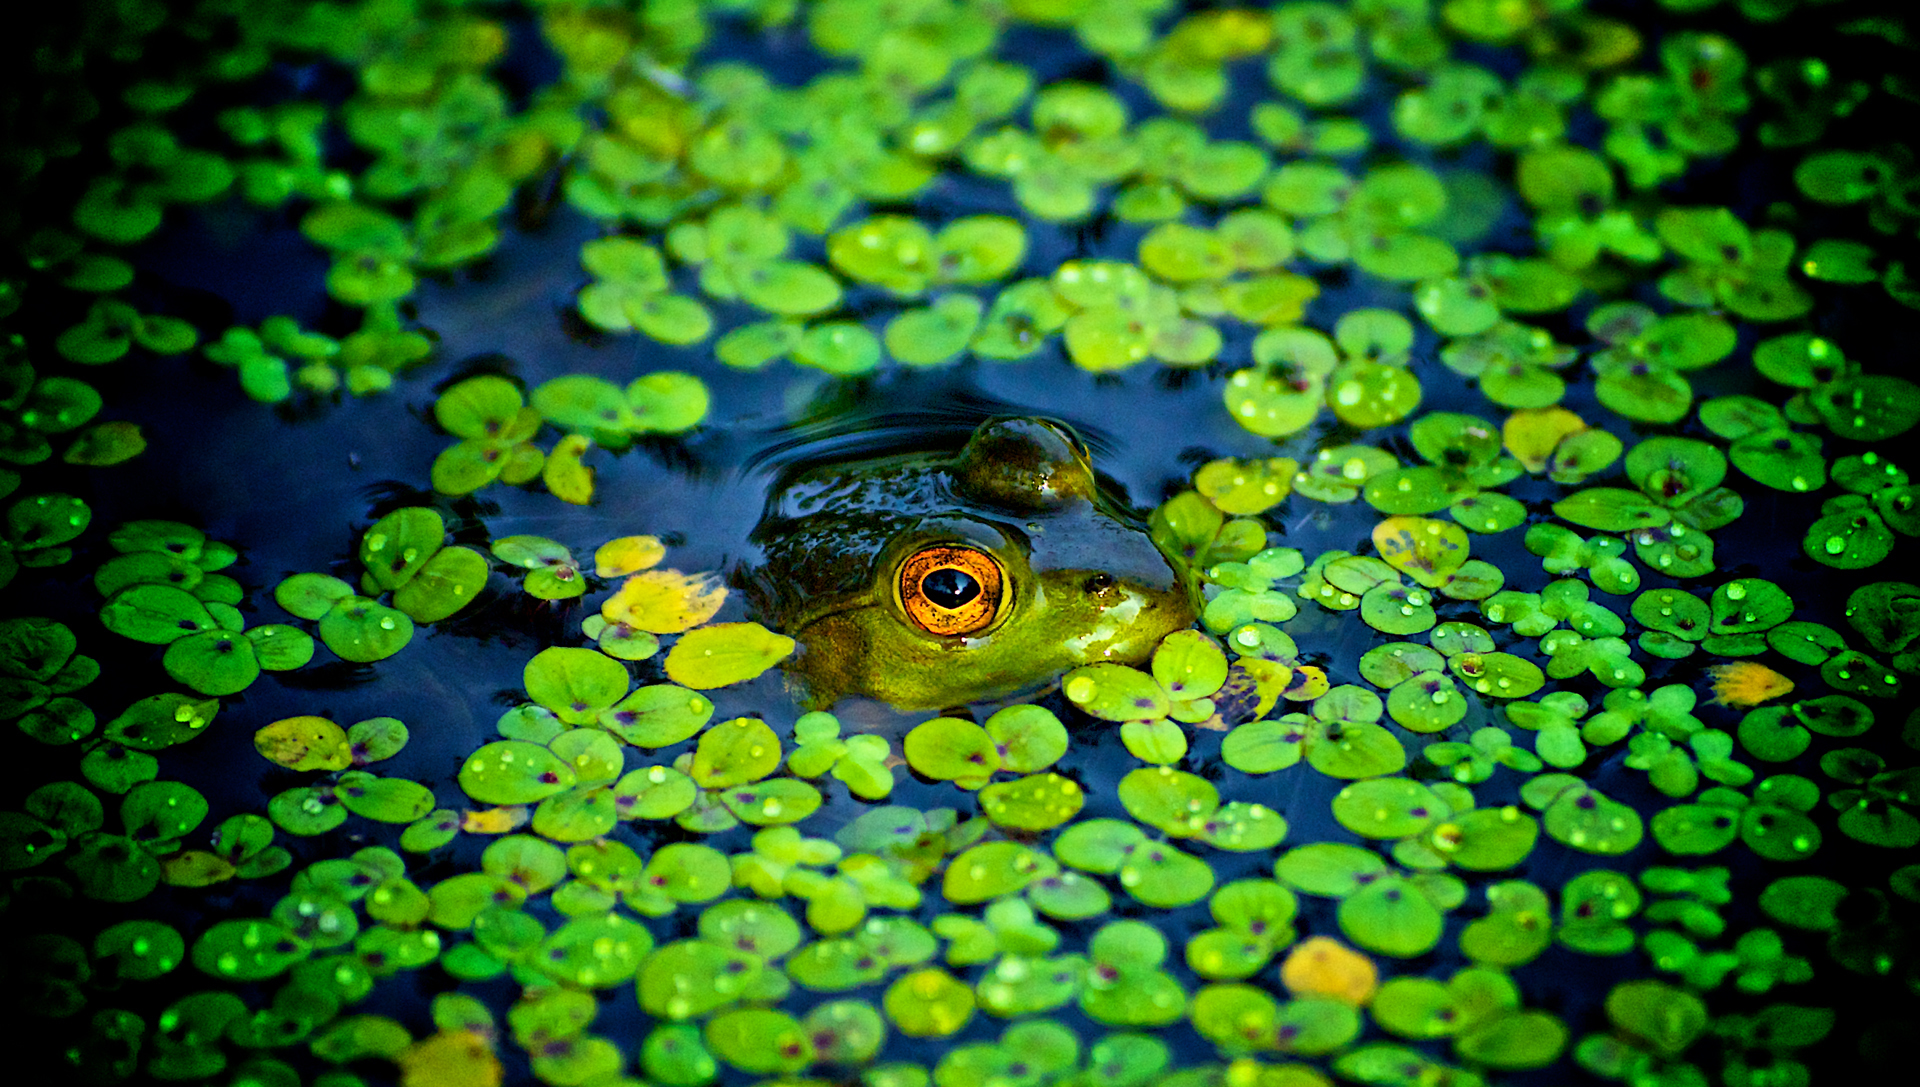 Green ponds Frogs camouflage HD Wallpaper